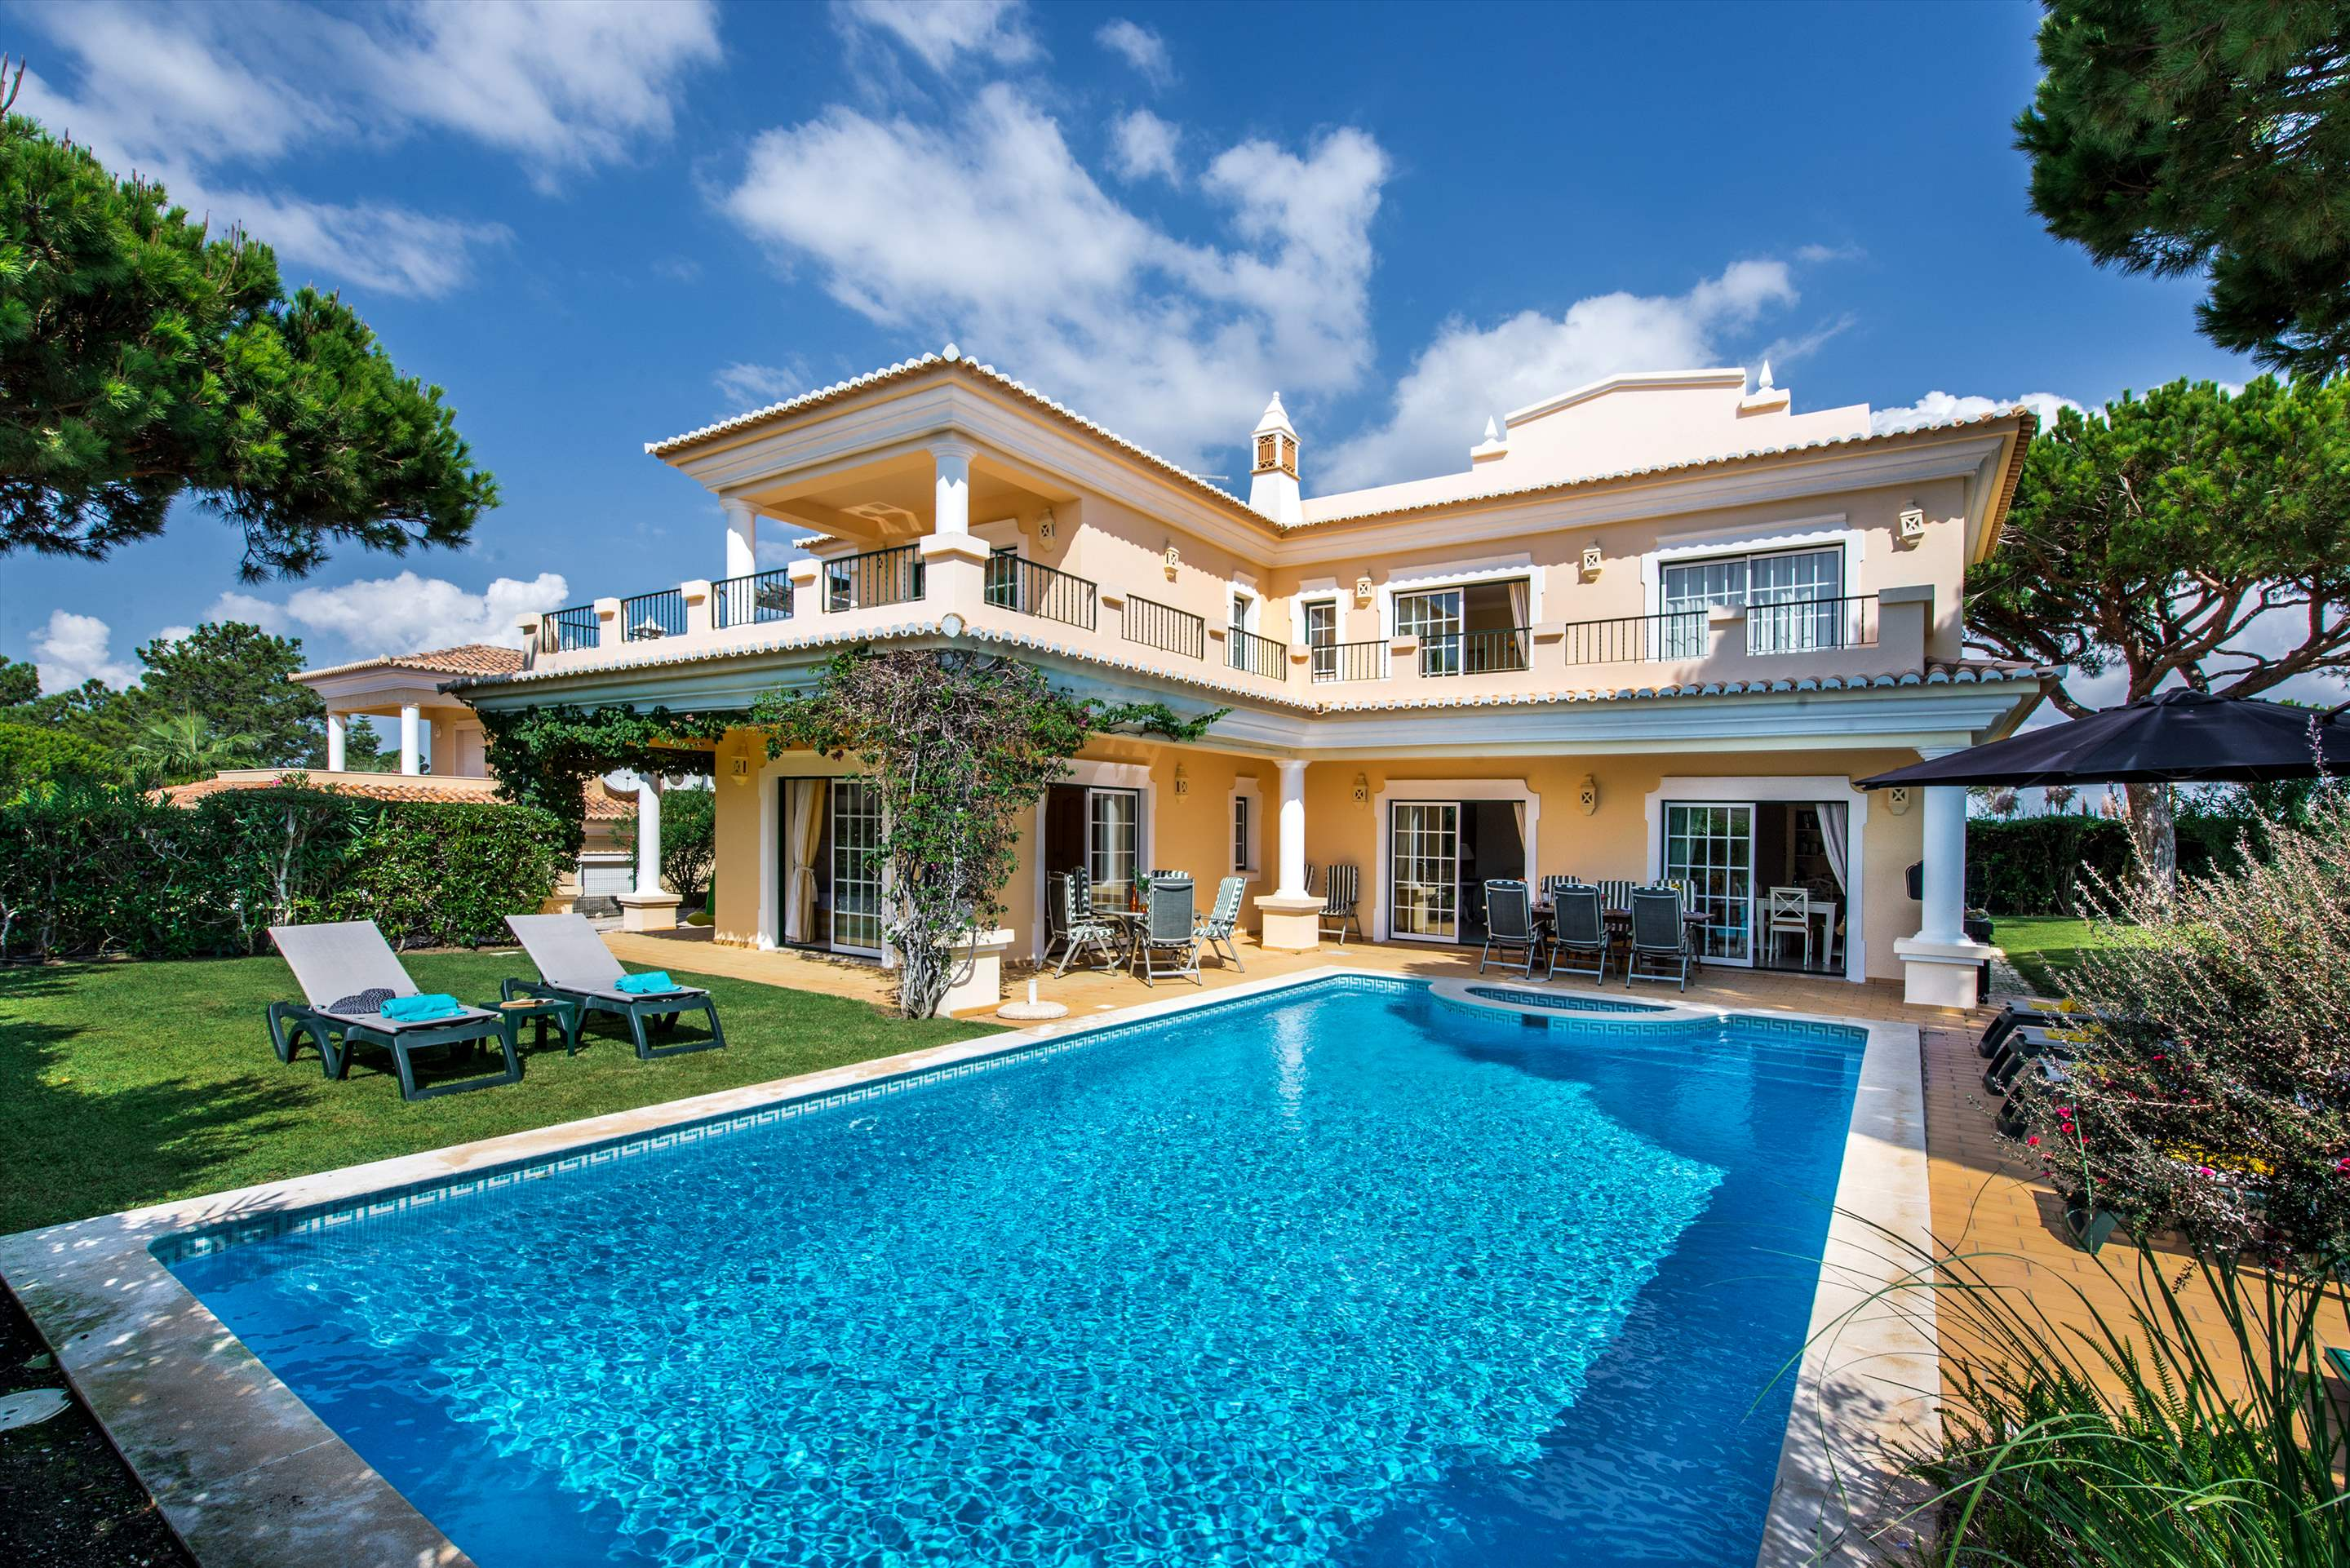 Casa da Encosta, 4 bedroom villa in Vale do Lobo, Algarve Photo #1